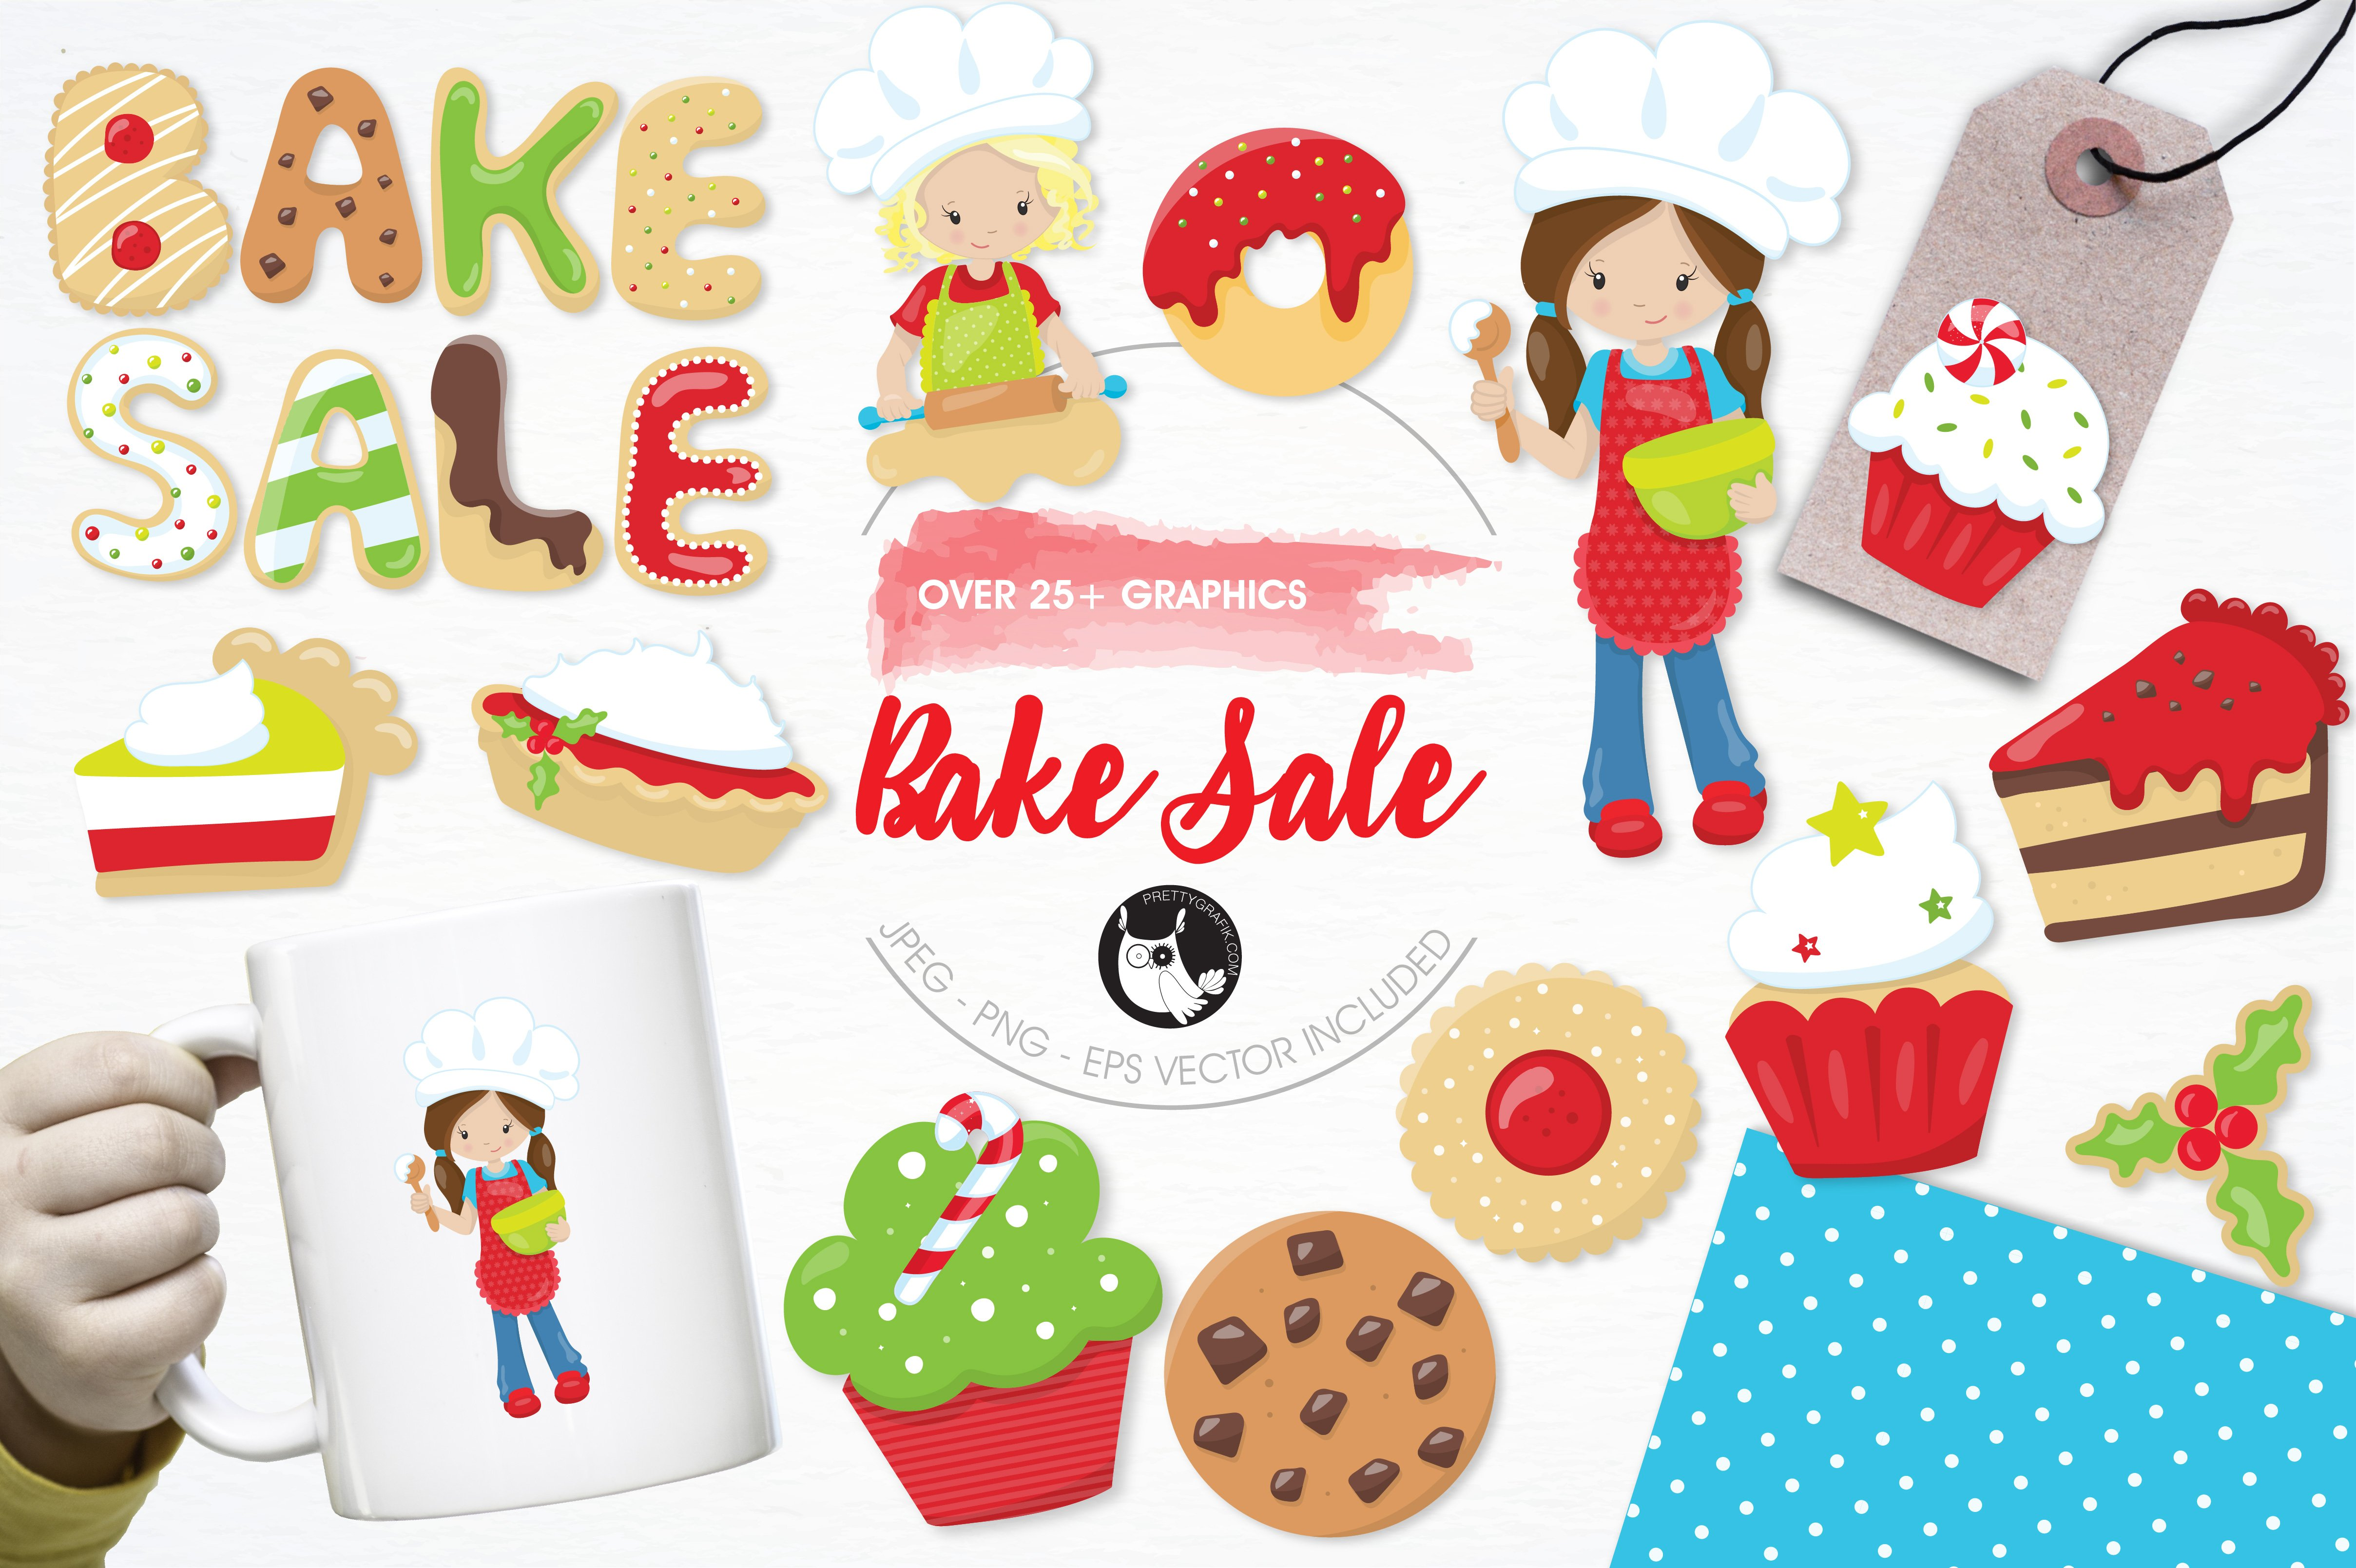 baking icons photos graphics fonts themes templates creative bake illustration pack